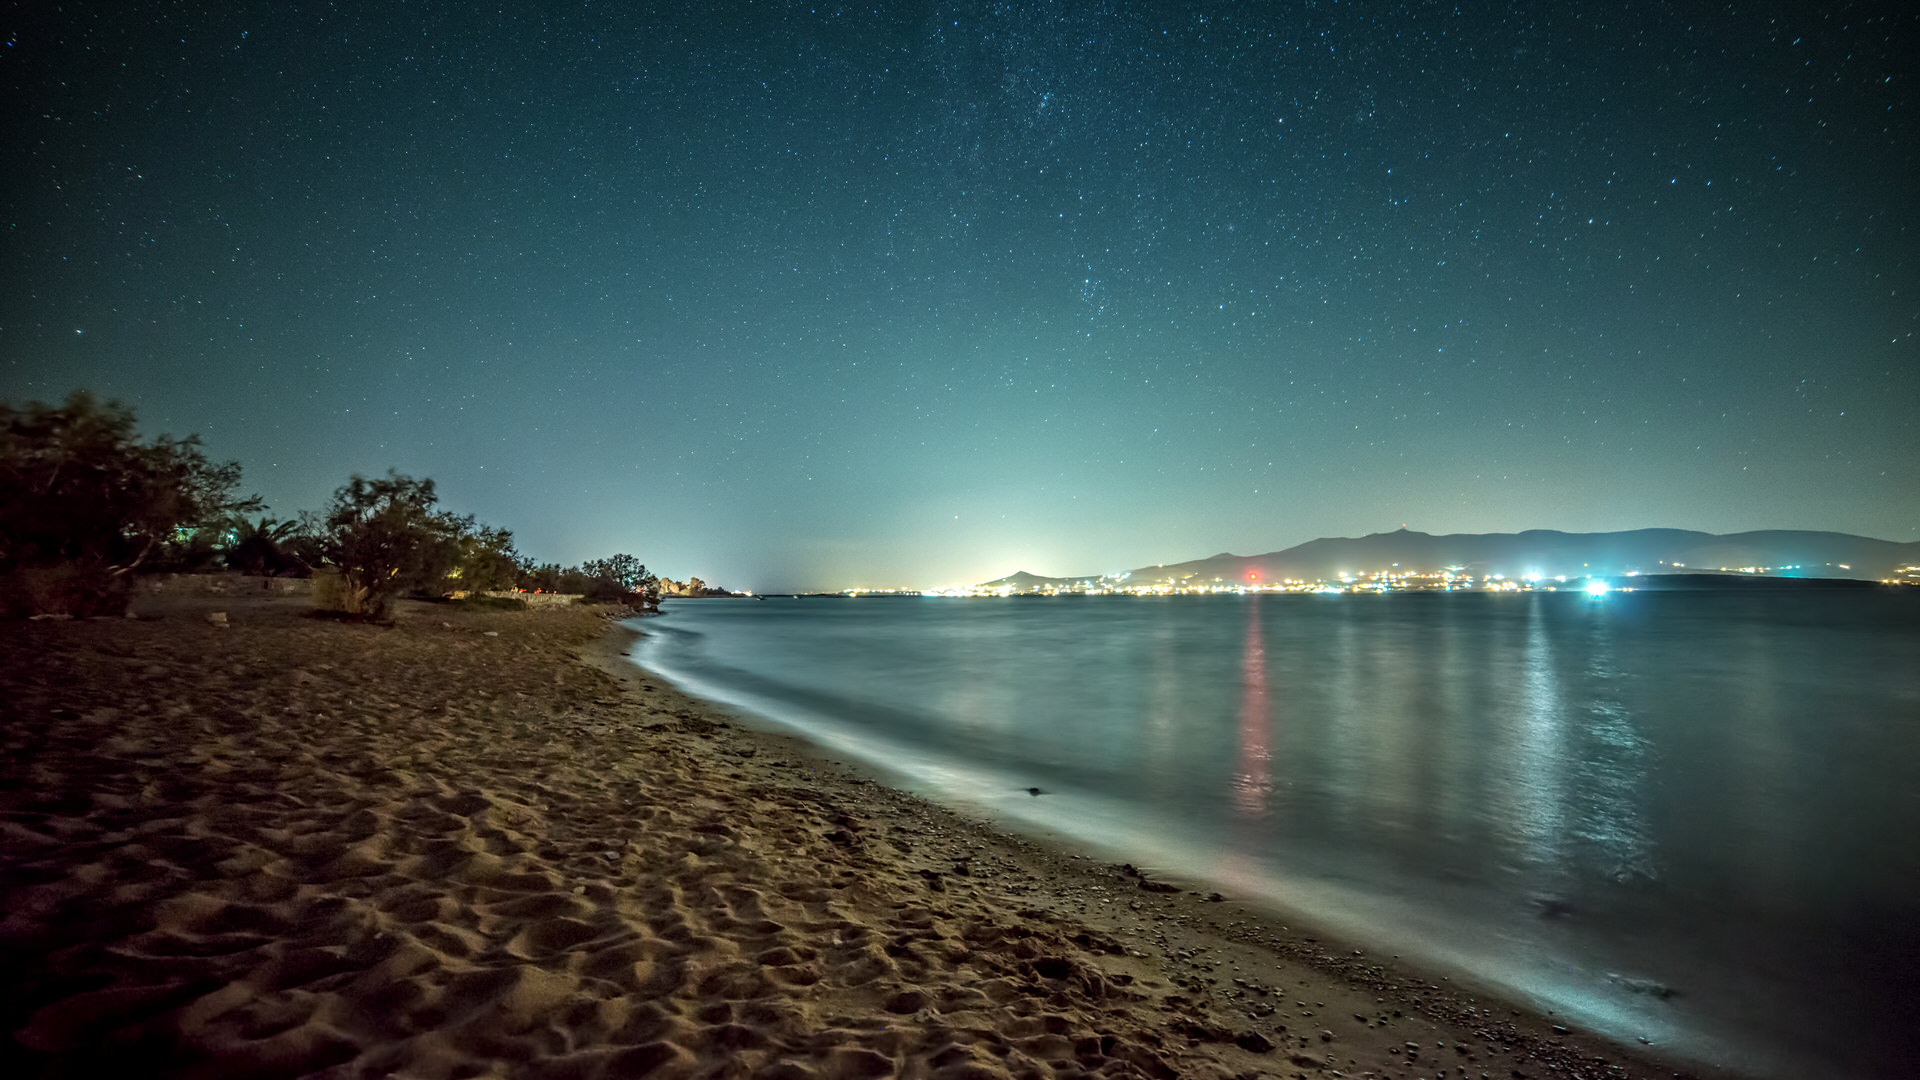 Astrophotography Christophe Anagno